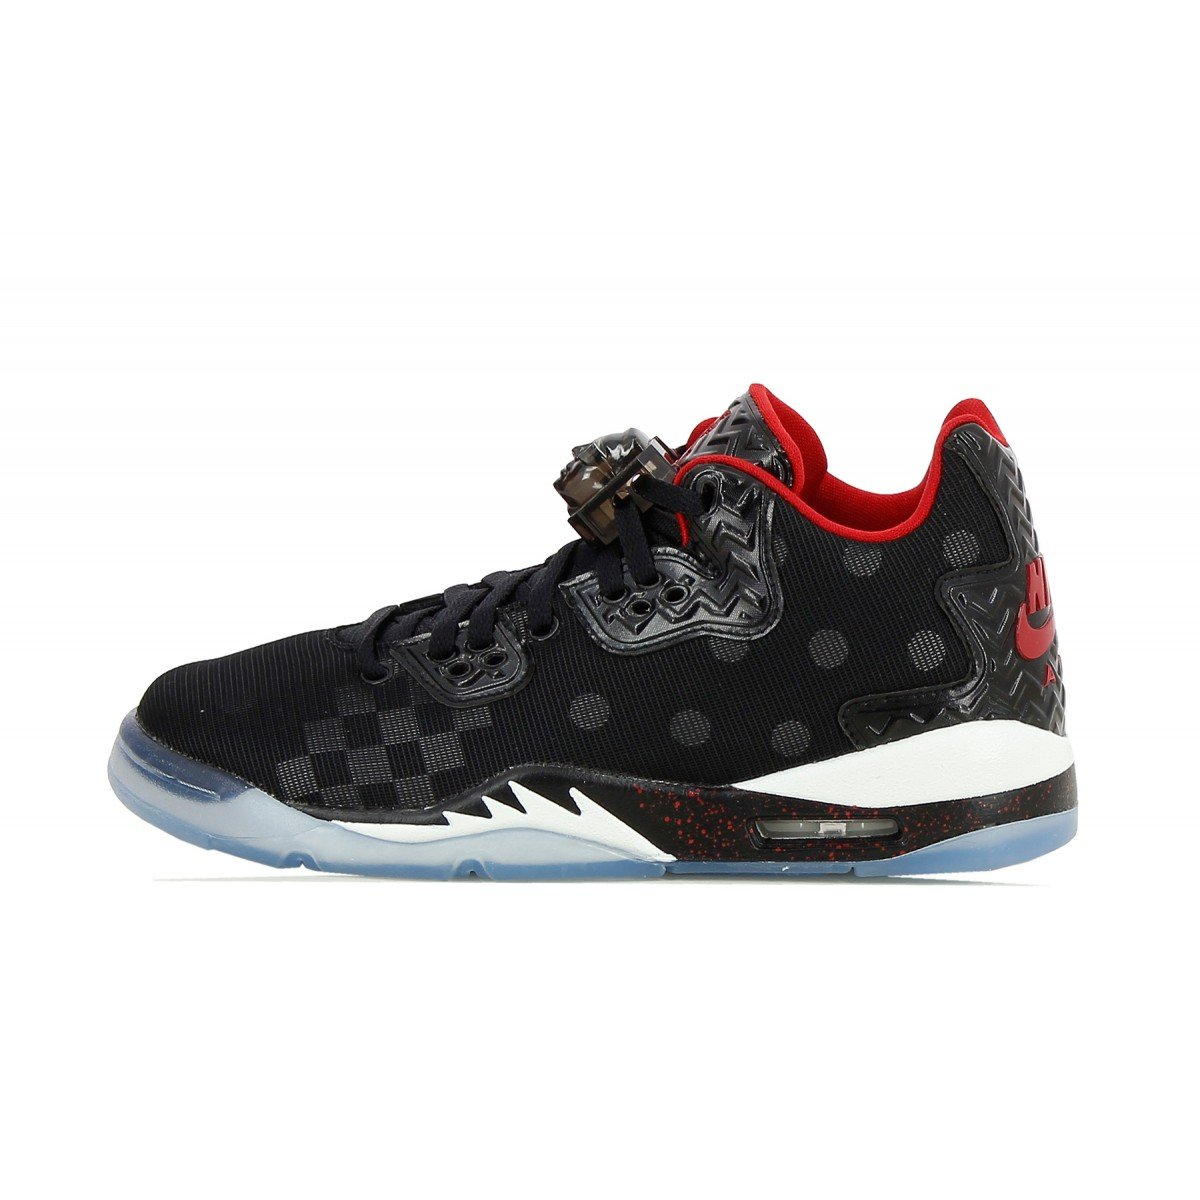 Nike Air Jordan Spike Forty Low BG Basketball Trainers 833460 Sneakers Shoes (5.5 M US, Black Gym red Wolf Grey Cool Grey 005)